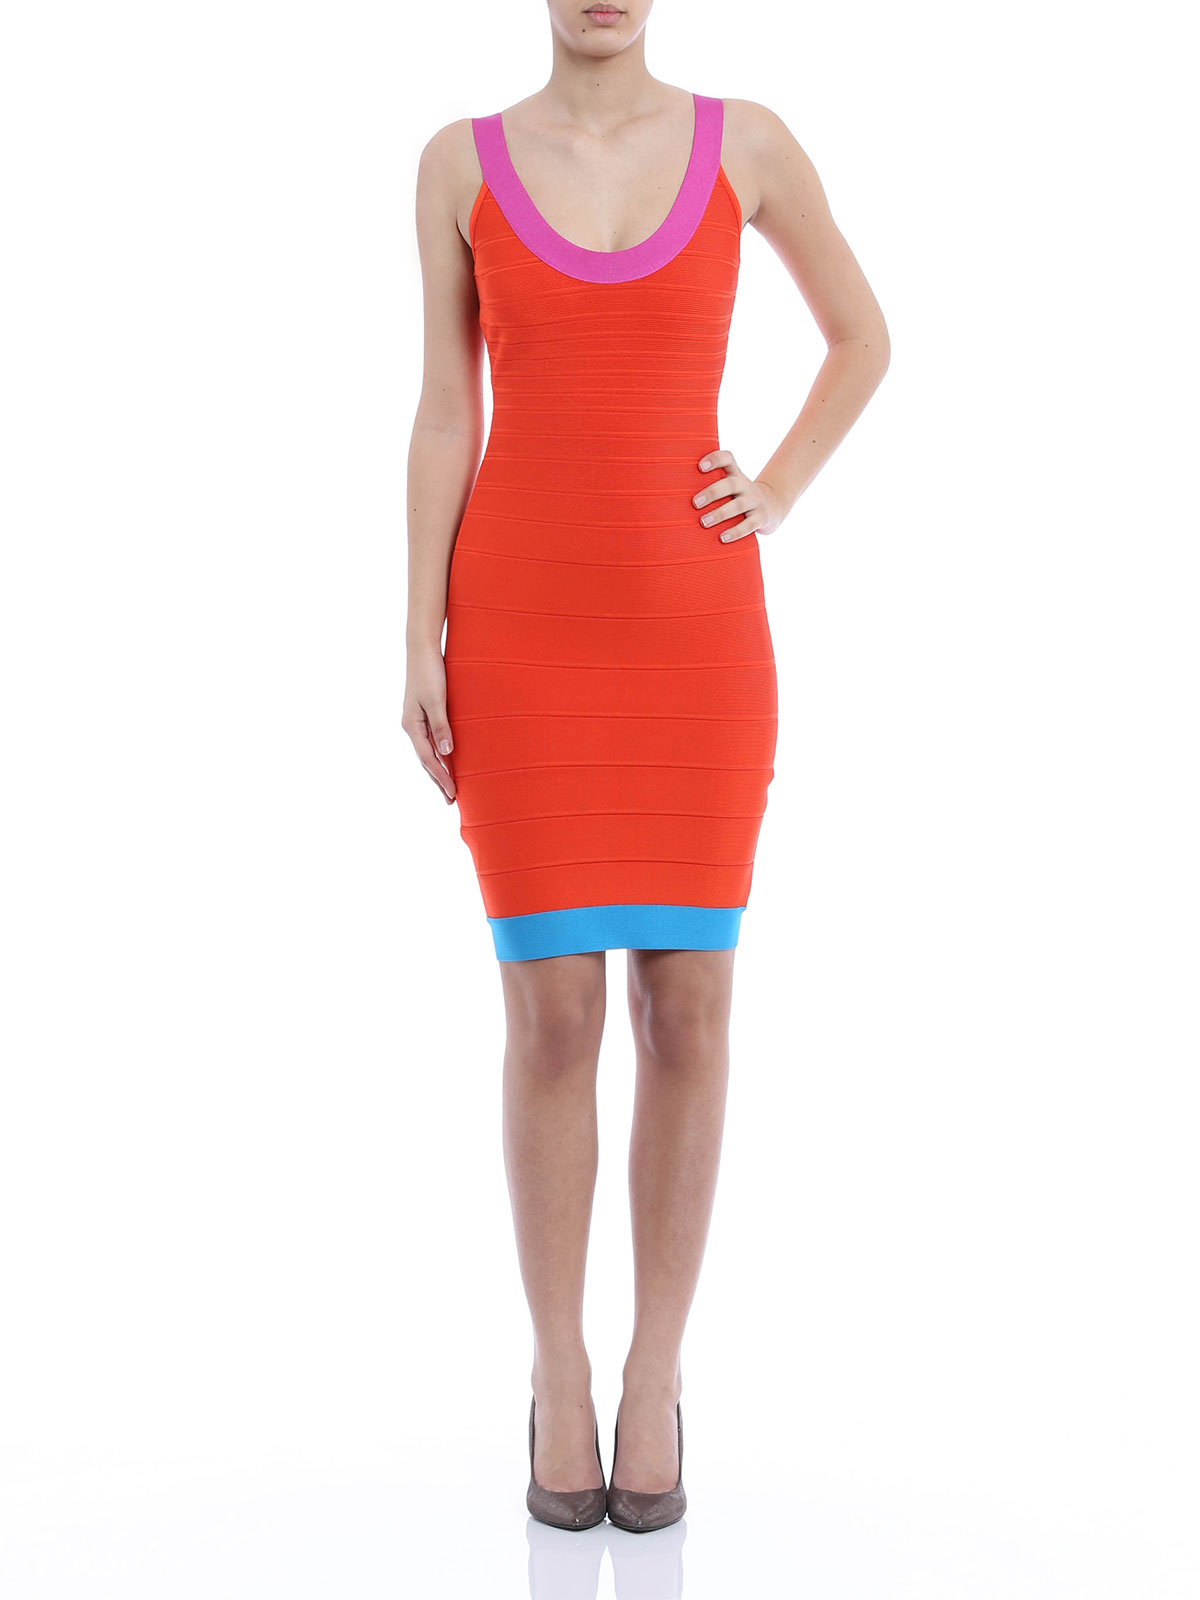 Cocktailkleid - Orange von Herve Leger - Cocktailkleider | iKRIX